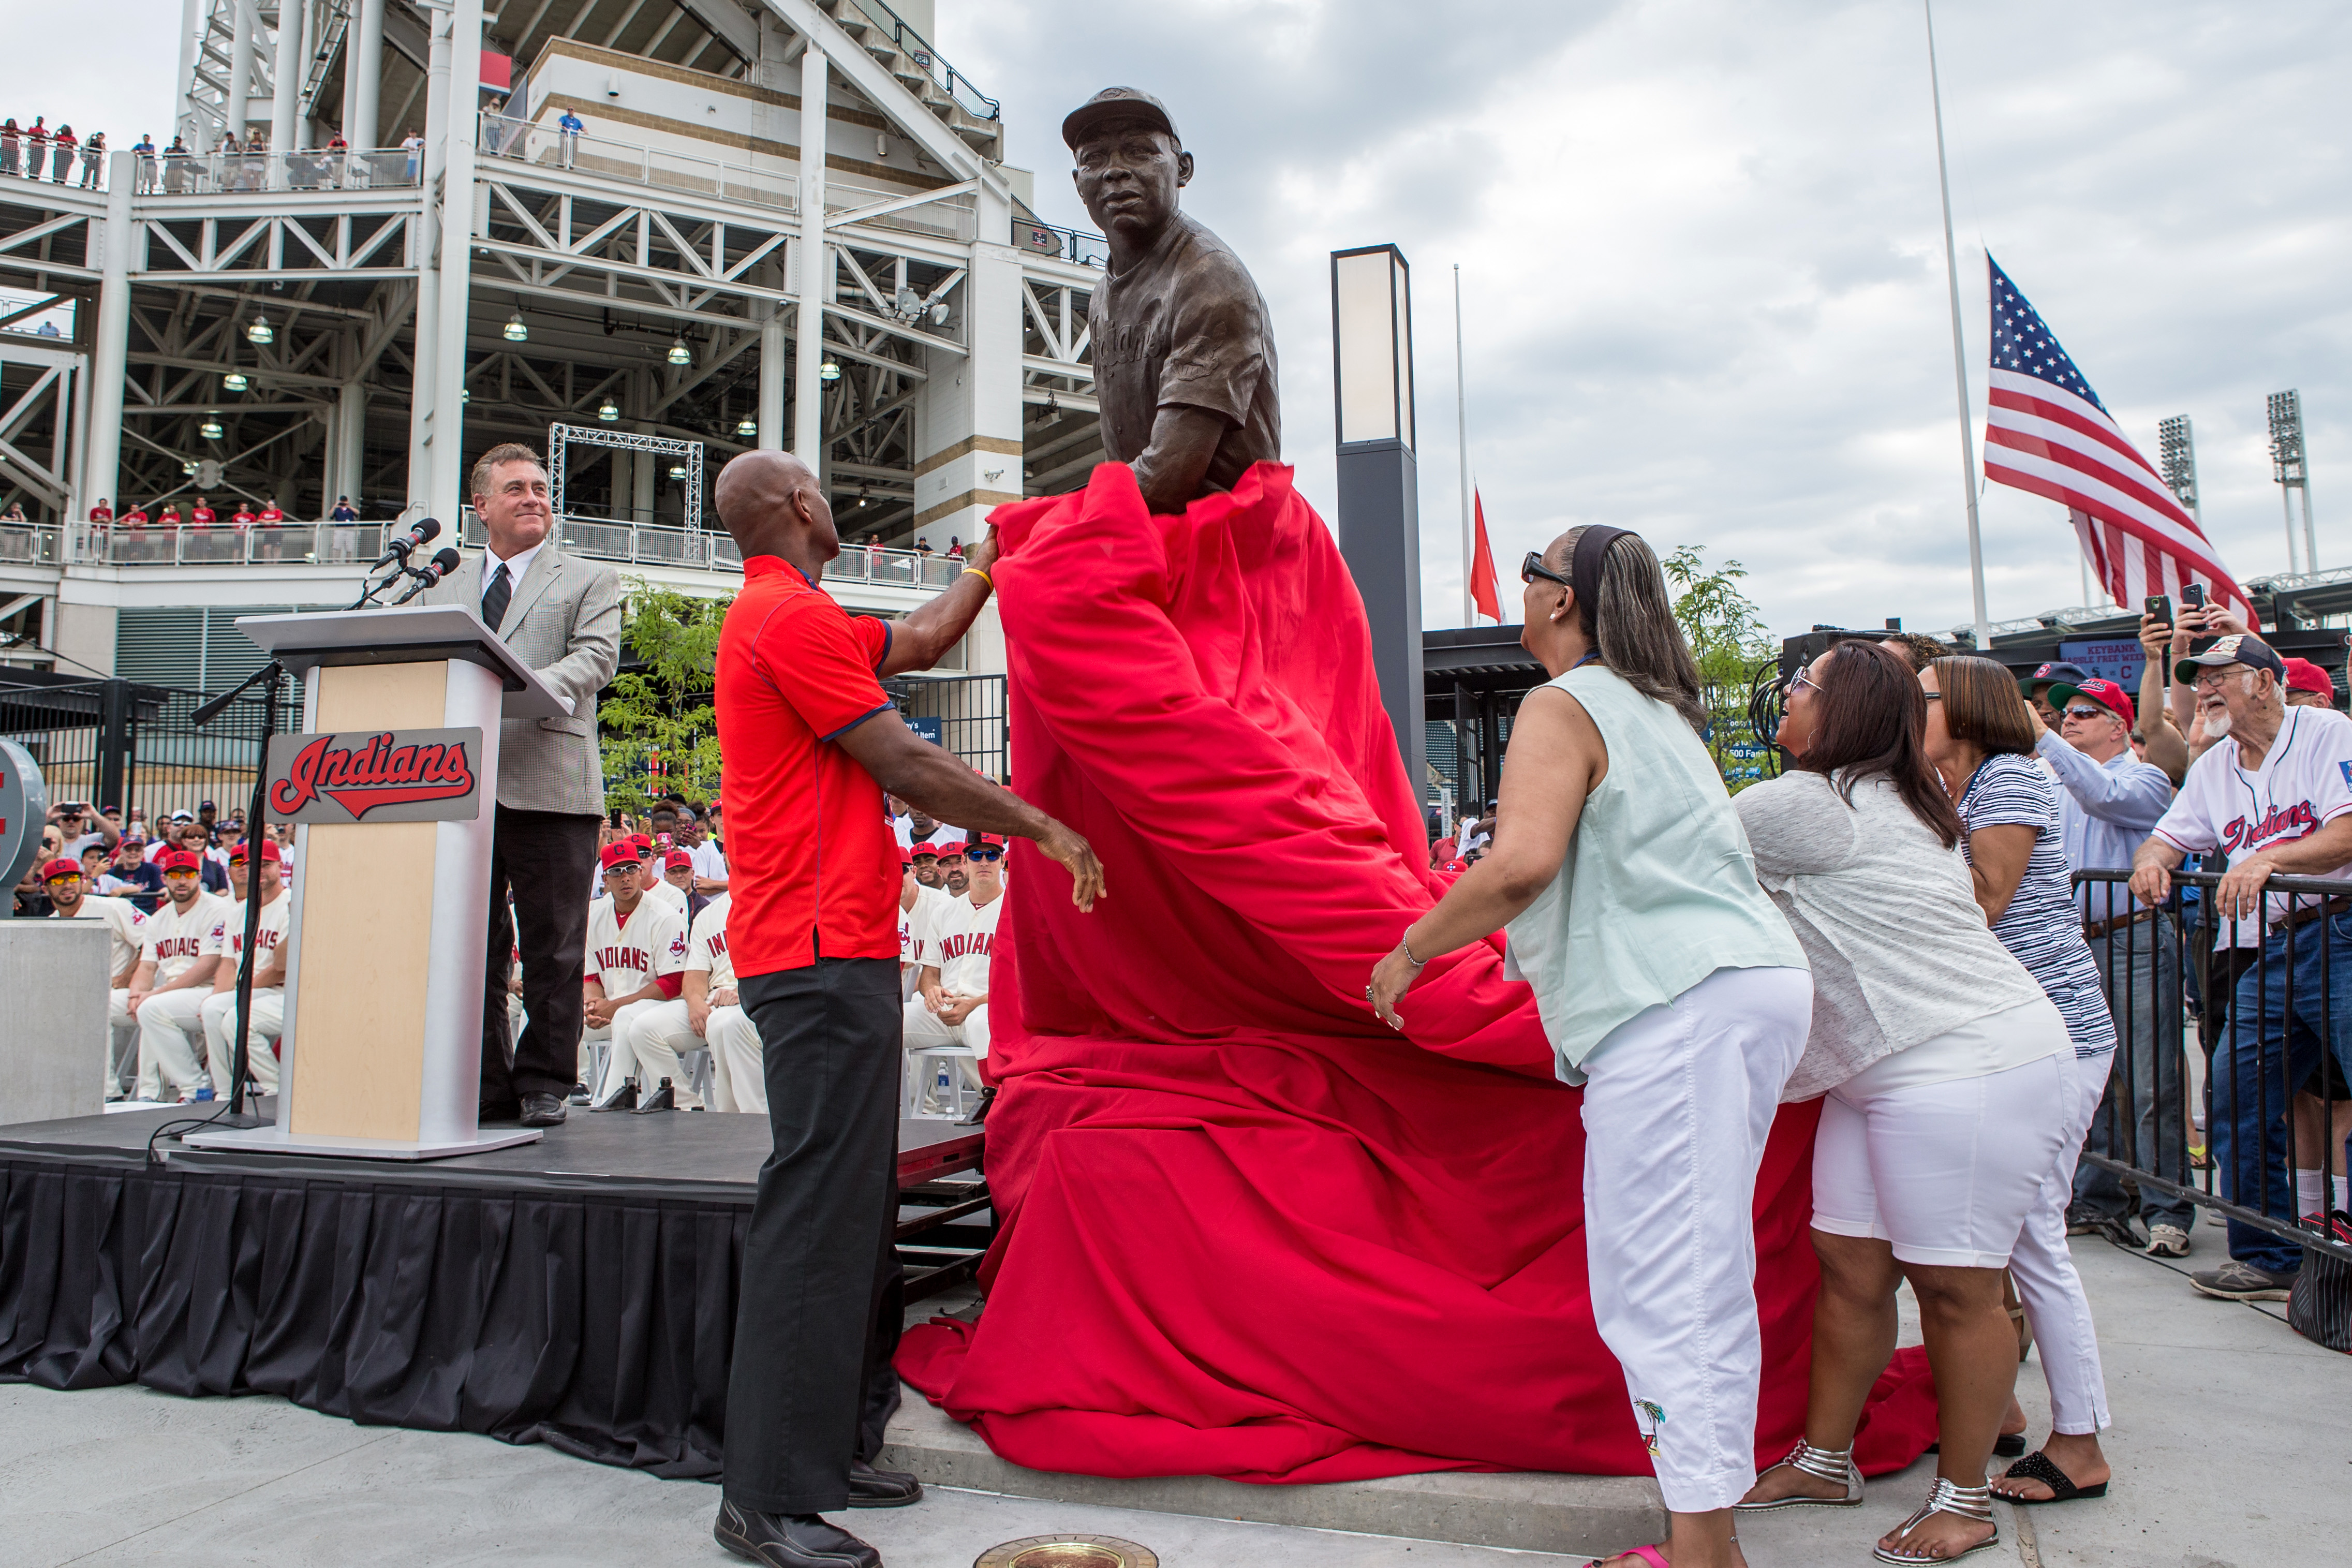 The family of Larry Doby unveil a statue of Larry Doby, the man who broke the American League color barrier, prior to the game between the Chicago White Sox and Cleveland Indians at Progressive Field in Cleveland, OH.